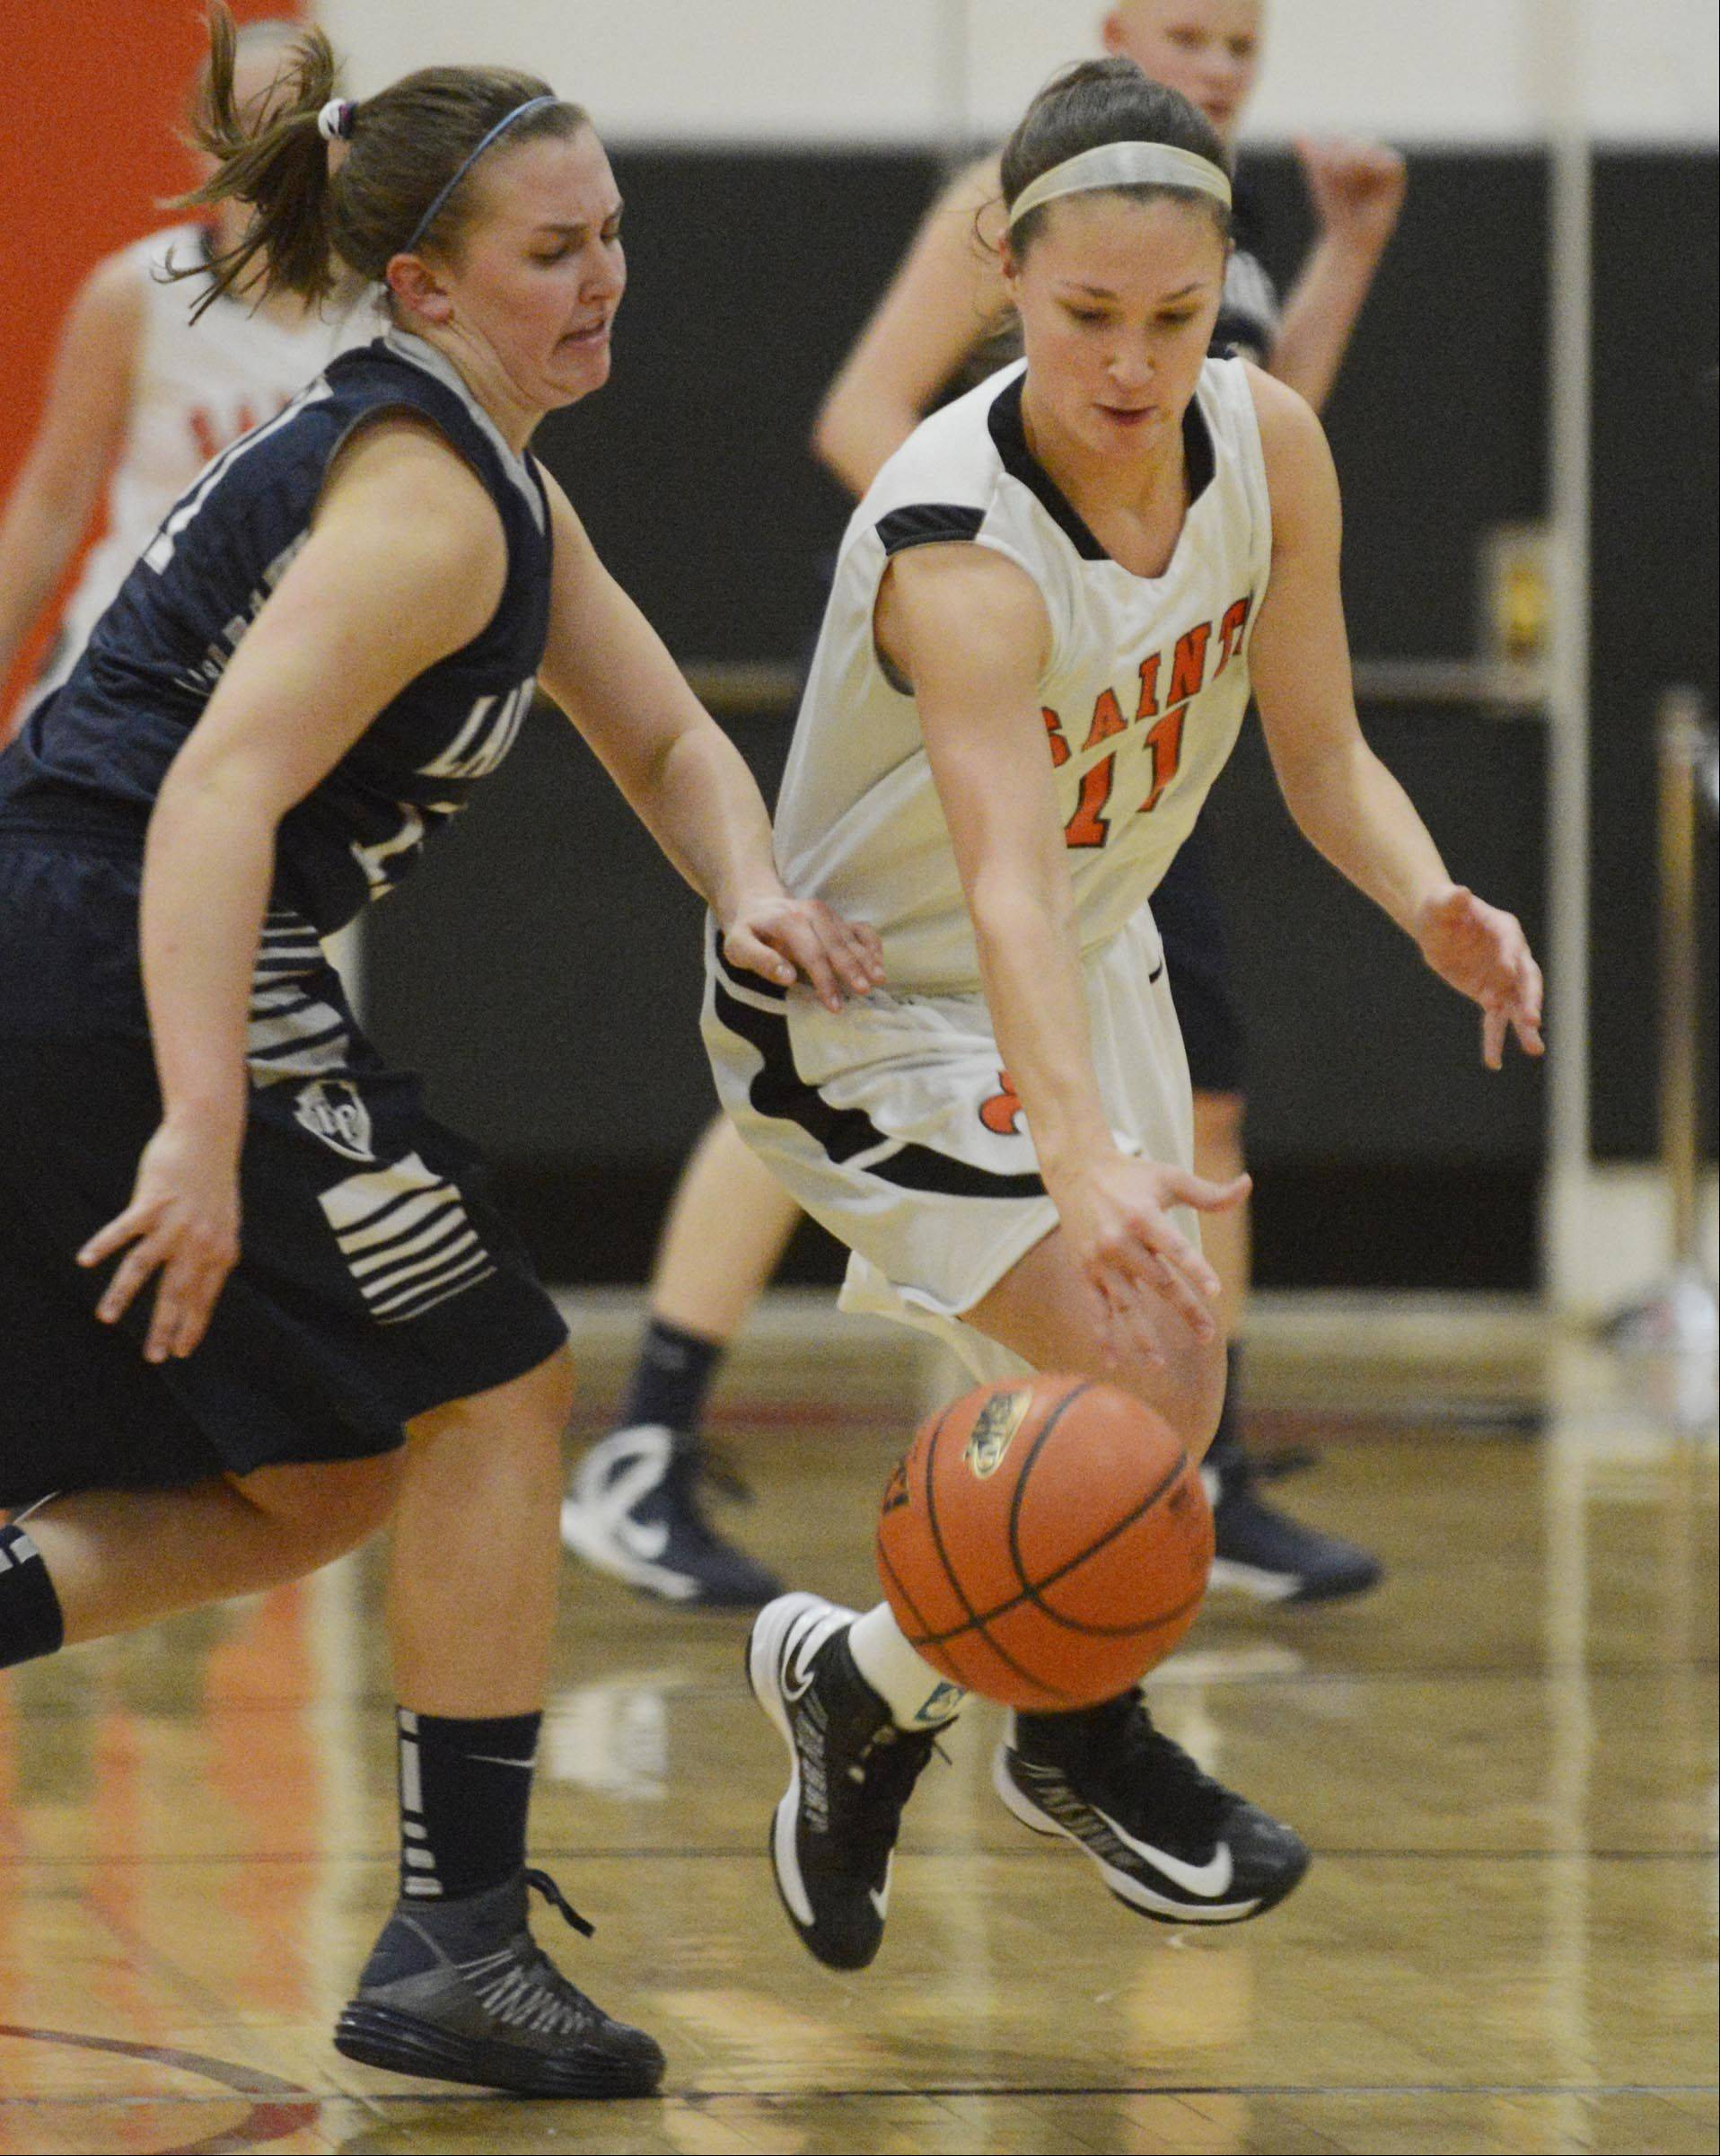 St. Charles East's Carly Pottle steals the ball from Lake Park's Emily Duckhorn.